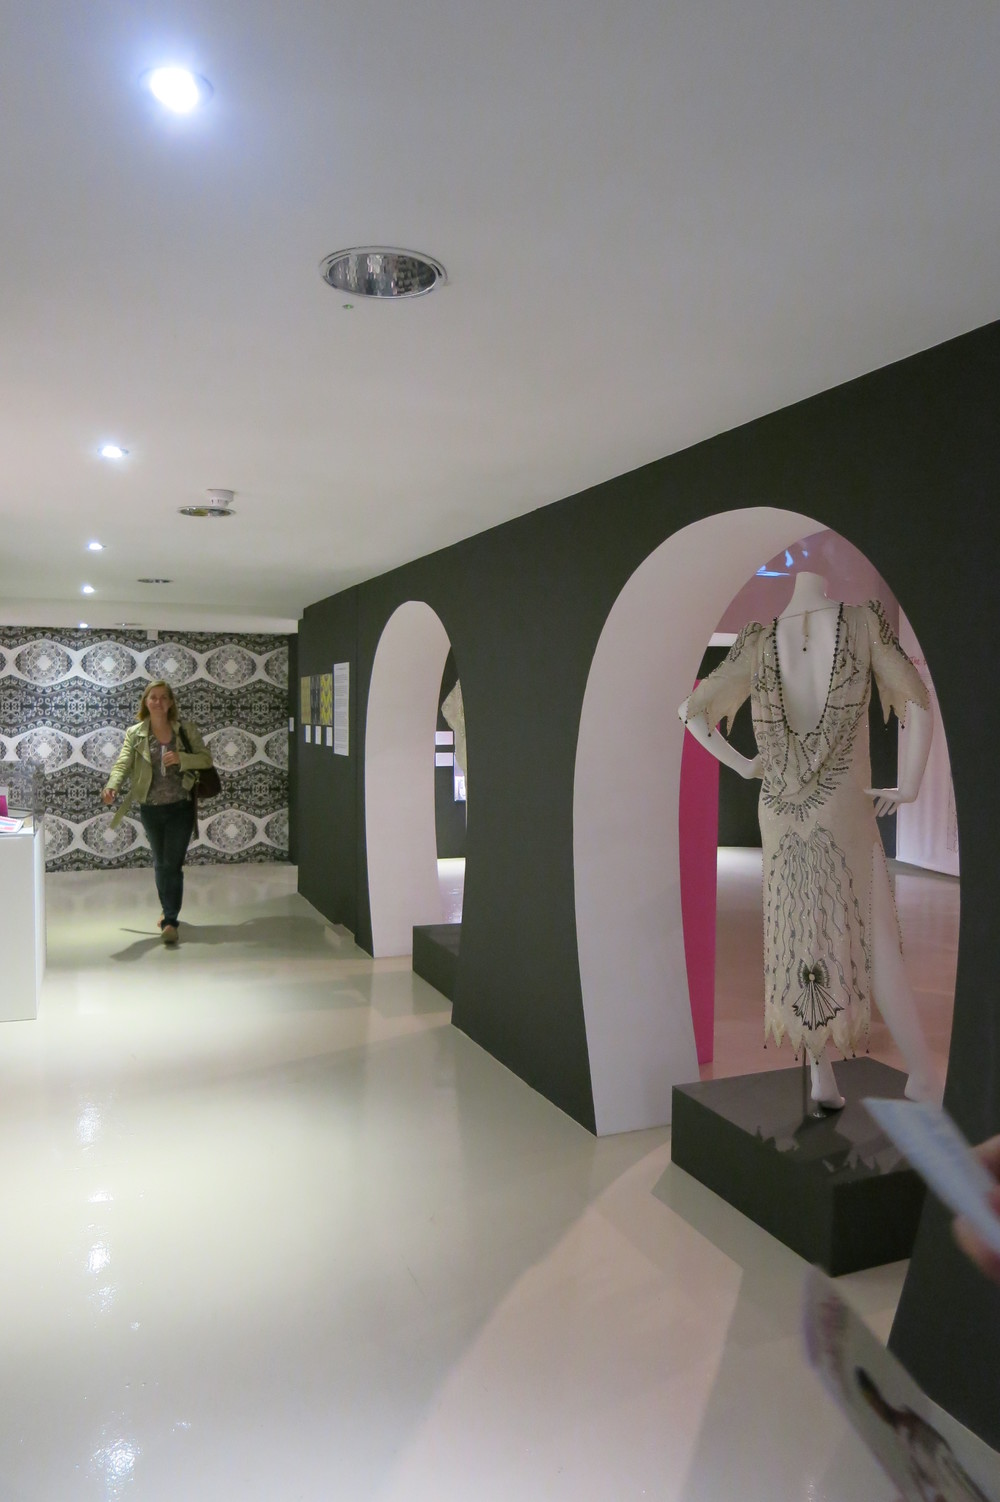 Entrance into the 'Unseen' exhibition of Zandra Rhodes' exhibition at the Fashion & Textile Museum, London 2013